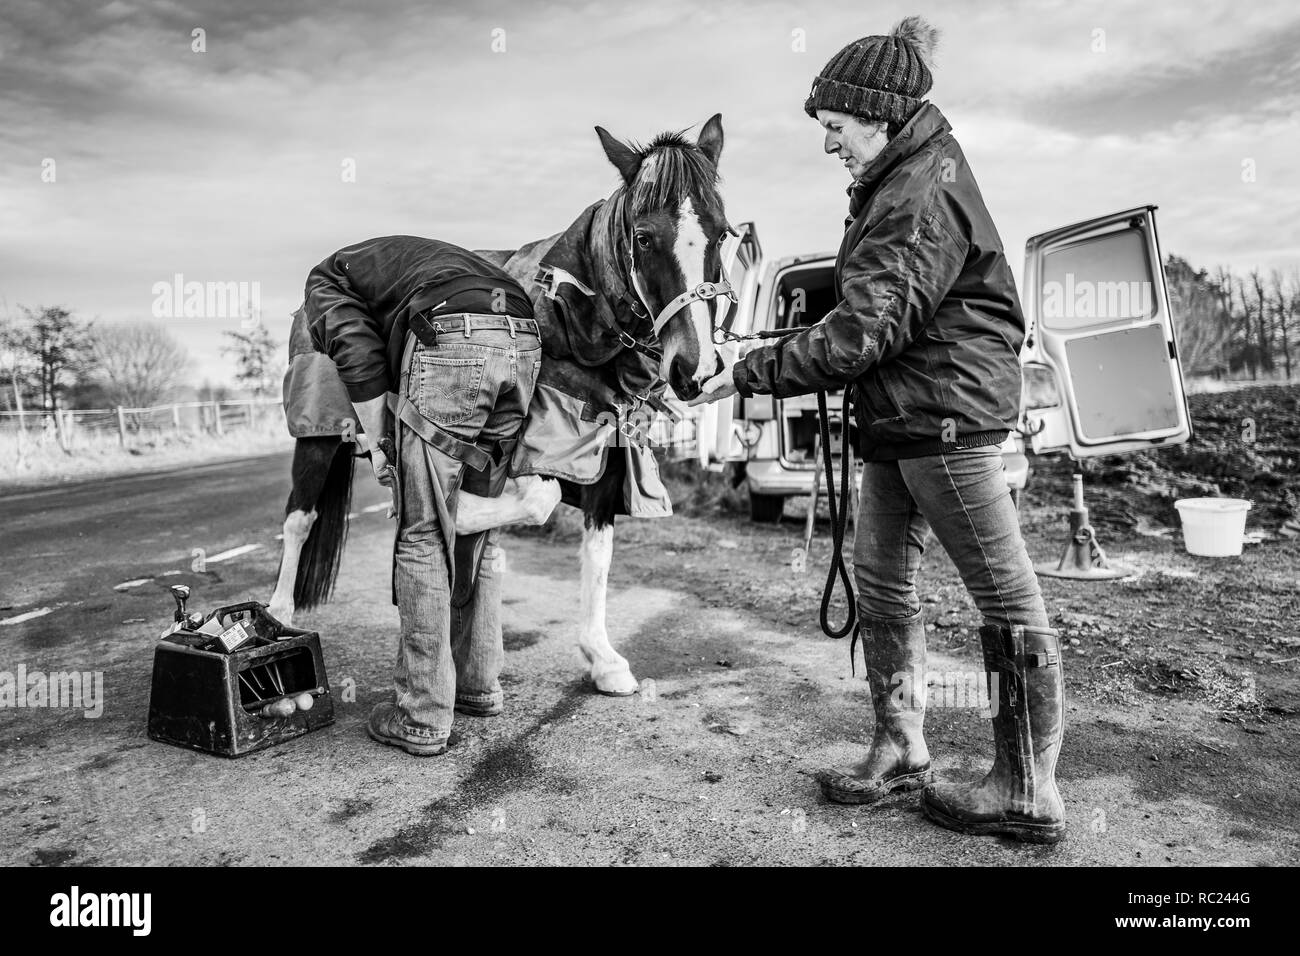 Morebattle, Kelso, Scottish Borders, UK. 9th January 2019. Gillian McFadyen has her horses shoed by a farrier at the end of a quiet T-junction near Mo - Stock Image